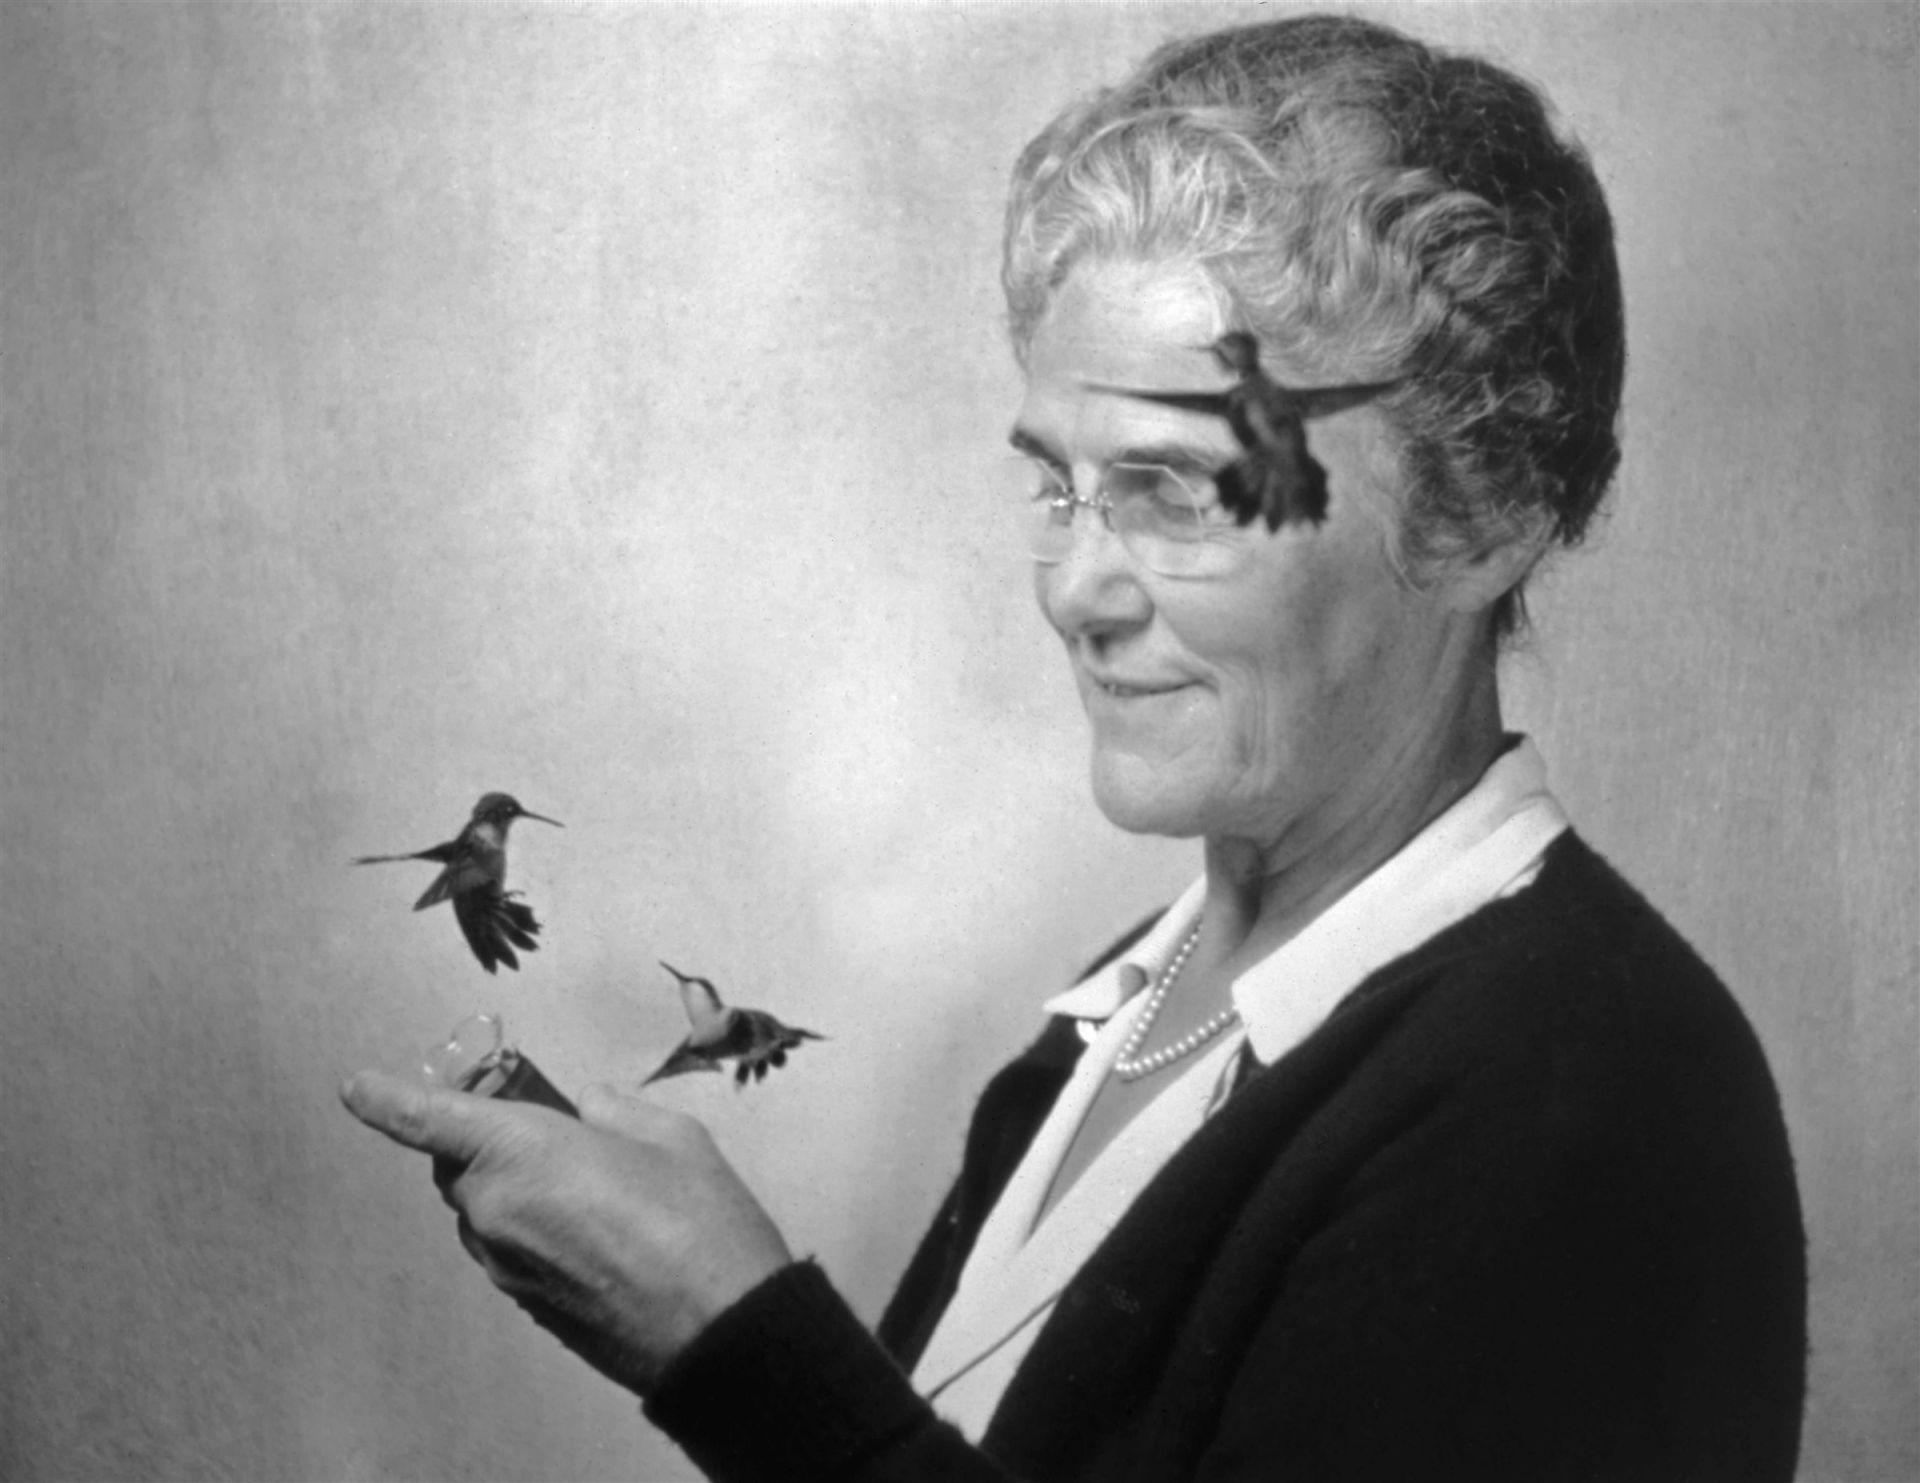 <i>Mrs Webster and Her Hummingbirds,</i> 1936<br> gelatin silver print<br> 12 x 13 inches<br> In 1936, at the urging of his friend and mentor, Vannevar Bush, Edgerton first visited the home of Mae and Laurence Webster in Holderness, New Hampshire. Mae Webster had created a paradise for hummingbirds, even training them to feed from hand-held vials, as seen in this photograph. Edgerton became a frequent visitor to Holderness, making photographs and motion pictures of the hummingbirds and other birds in flight. When his photographs began to appear in National Geographic and other publications, bird photographers sought his advice in adapting the stroboscopic technique to their own work. The exposure of l/l00, 000th of a second, not possible before Edgerton's electronic flash, caught this first picture of hummingbirds in action. Since their wings beat sixty times per second, accurate observations of hummingbirds' activities had previously eluded naturalists.